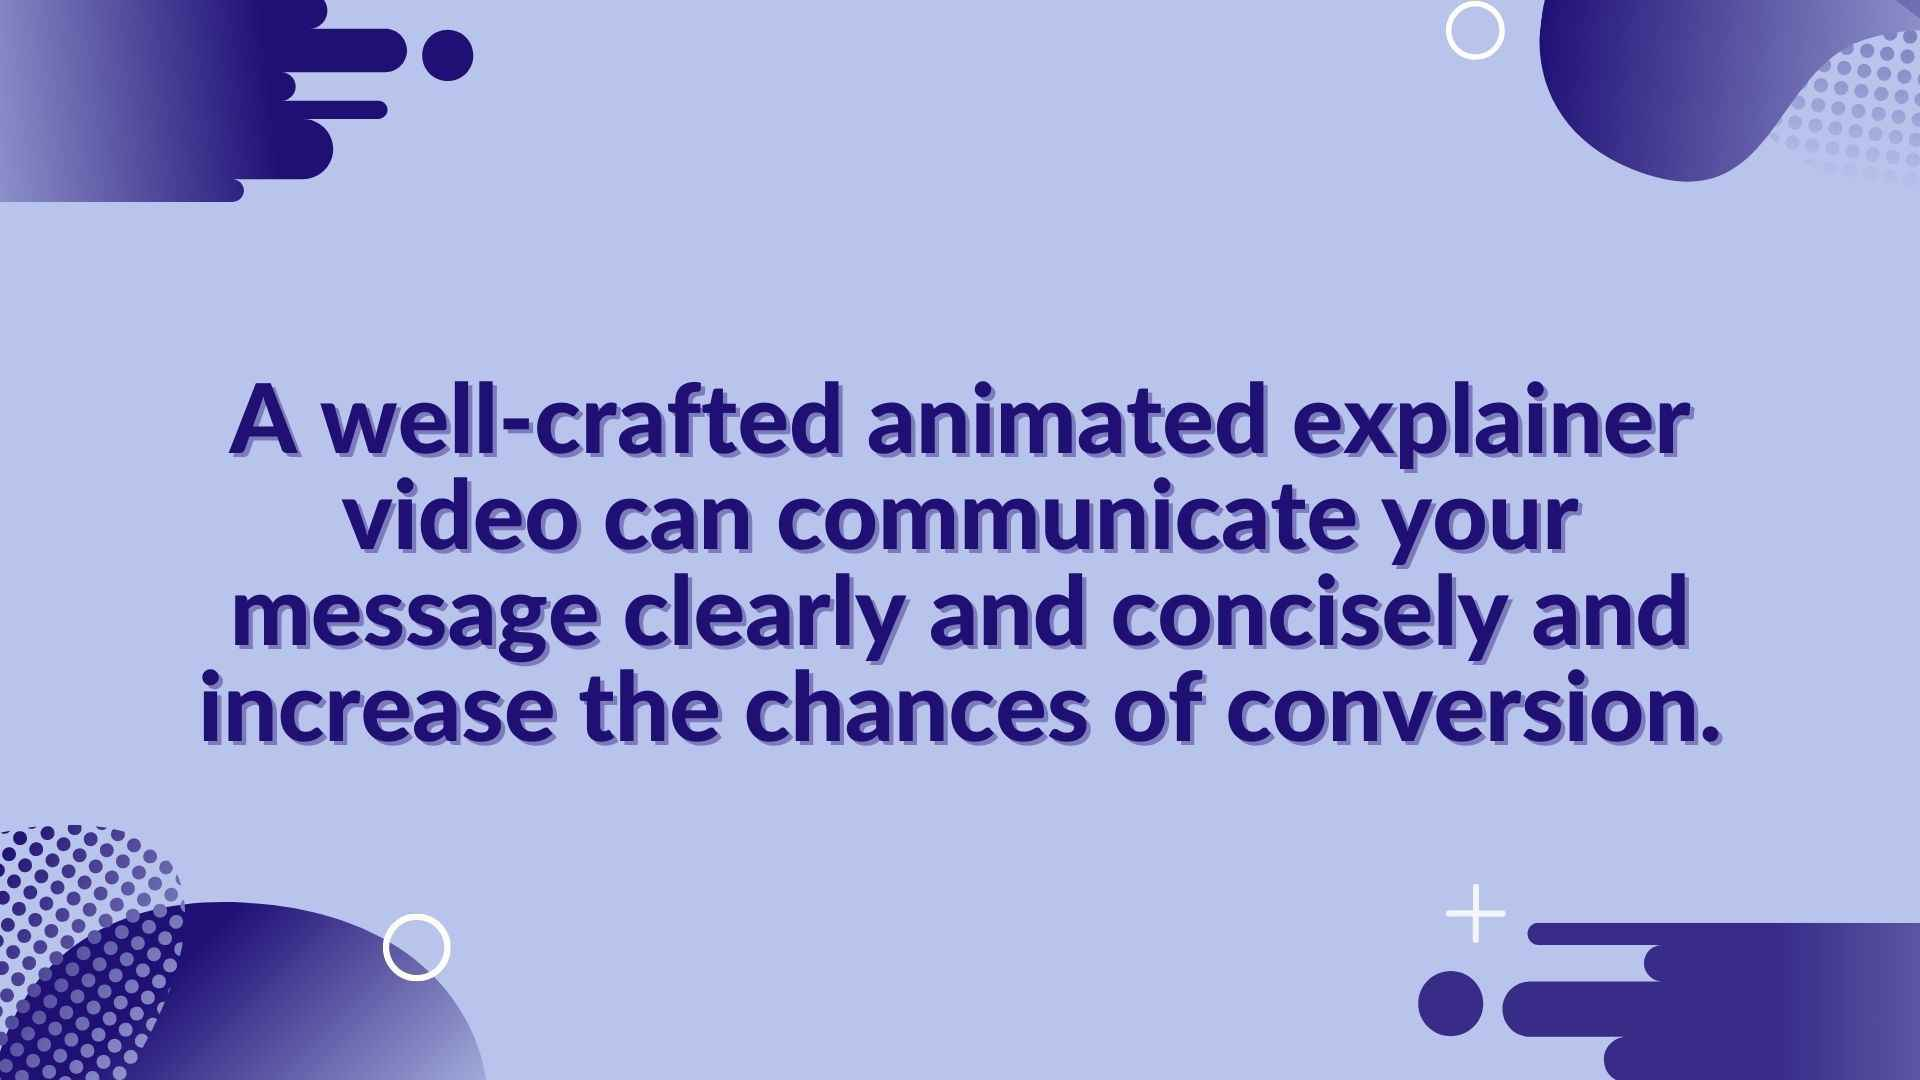 A well-crafted animated explainer video can communicate your message clearly and concisely